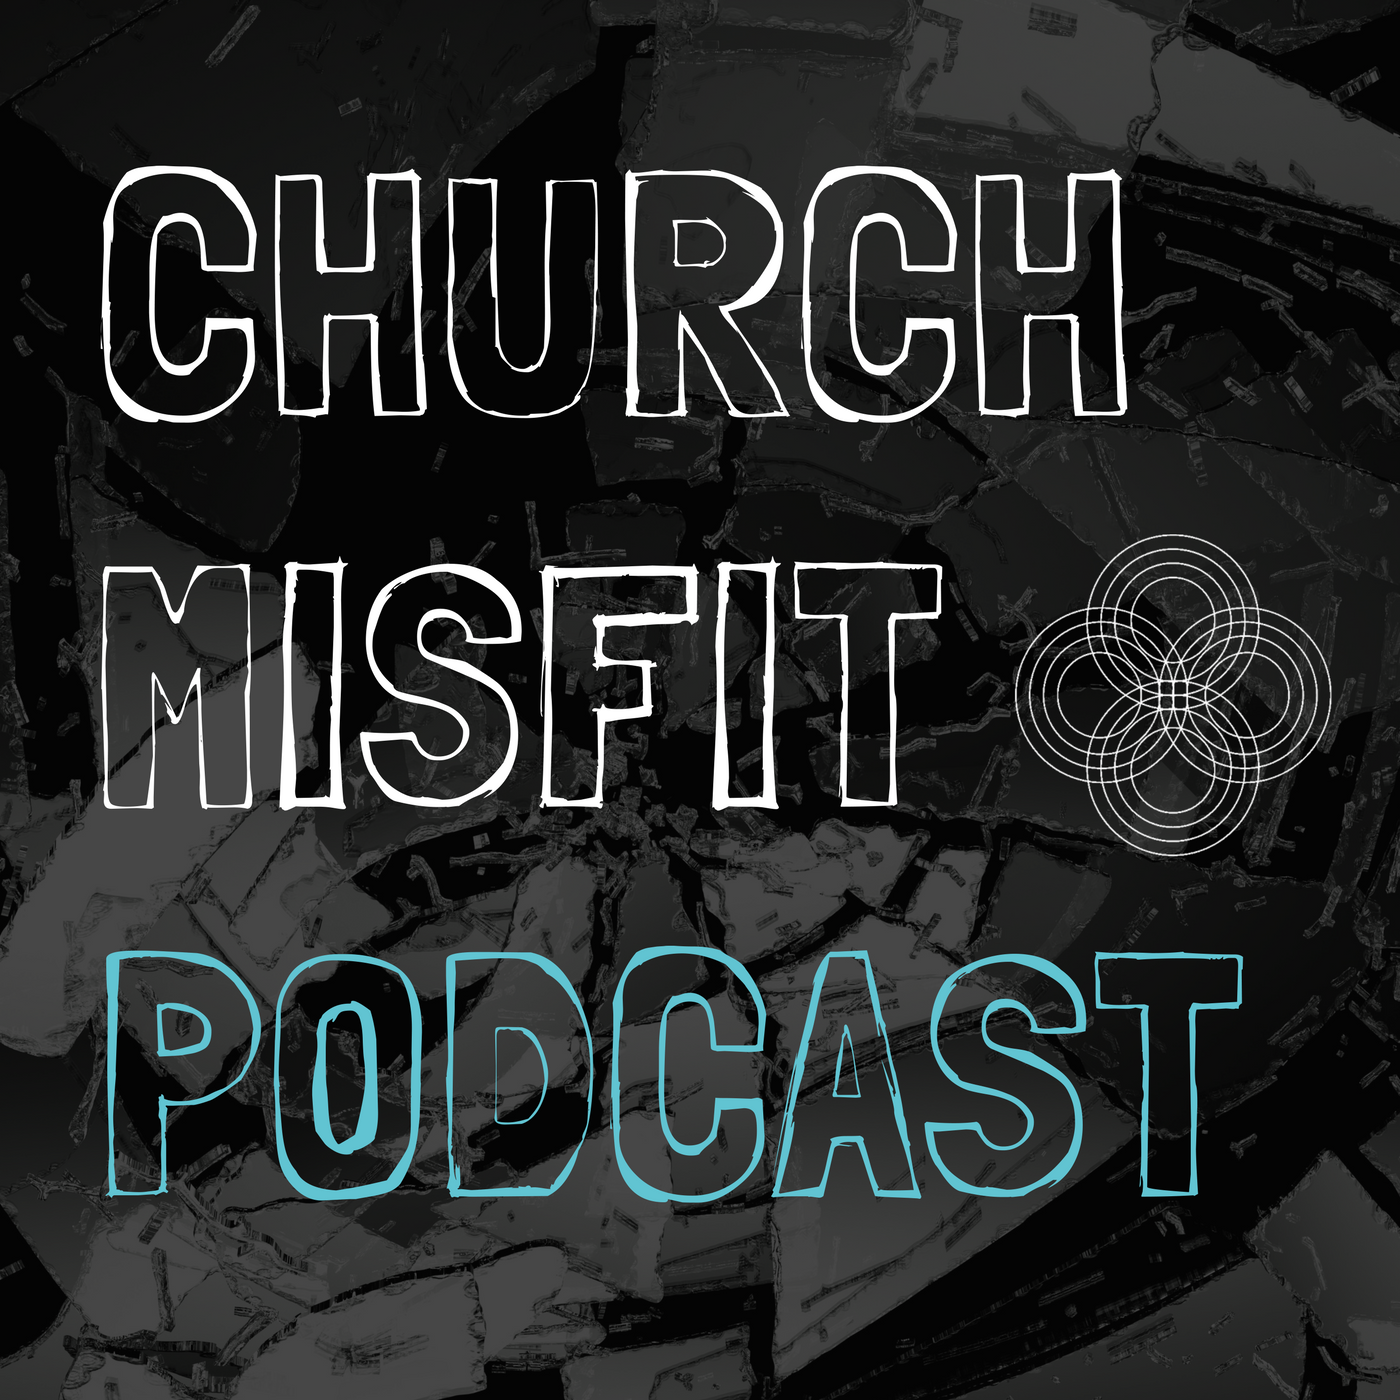 Church Misfit Podcast (1).png